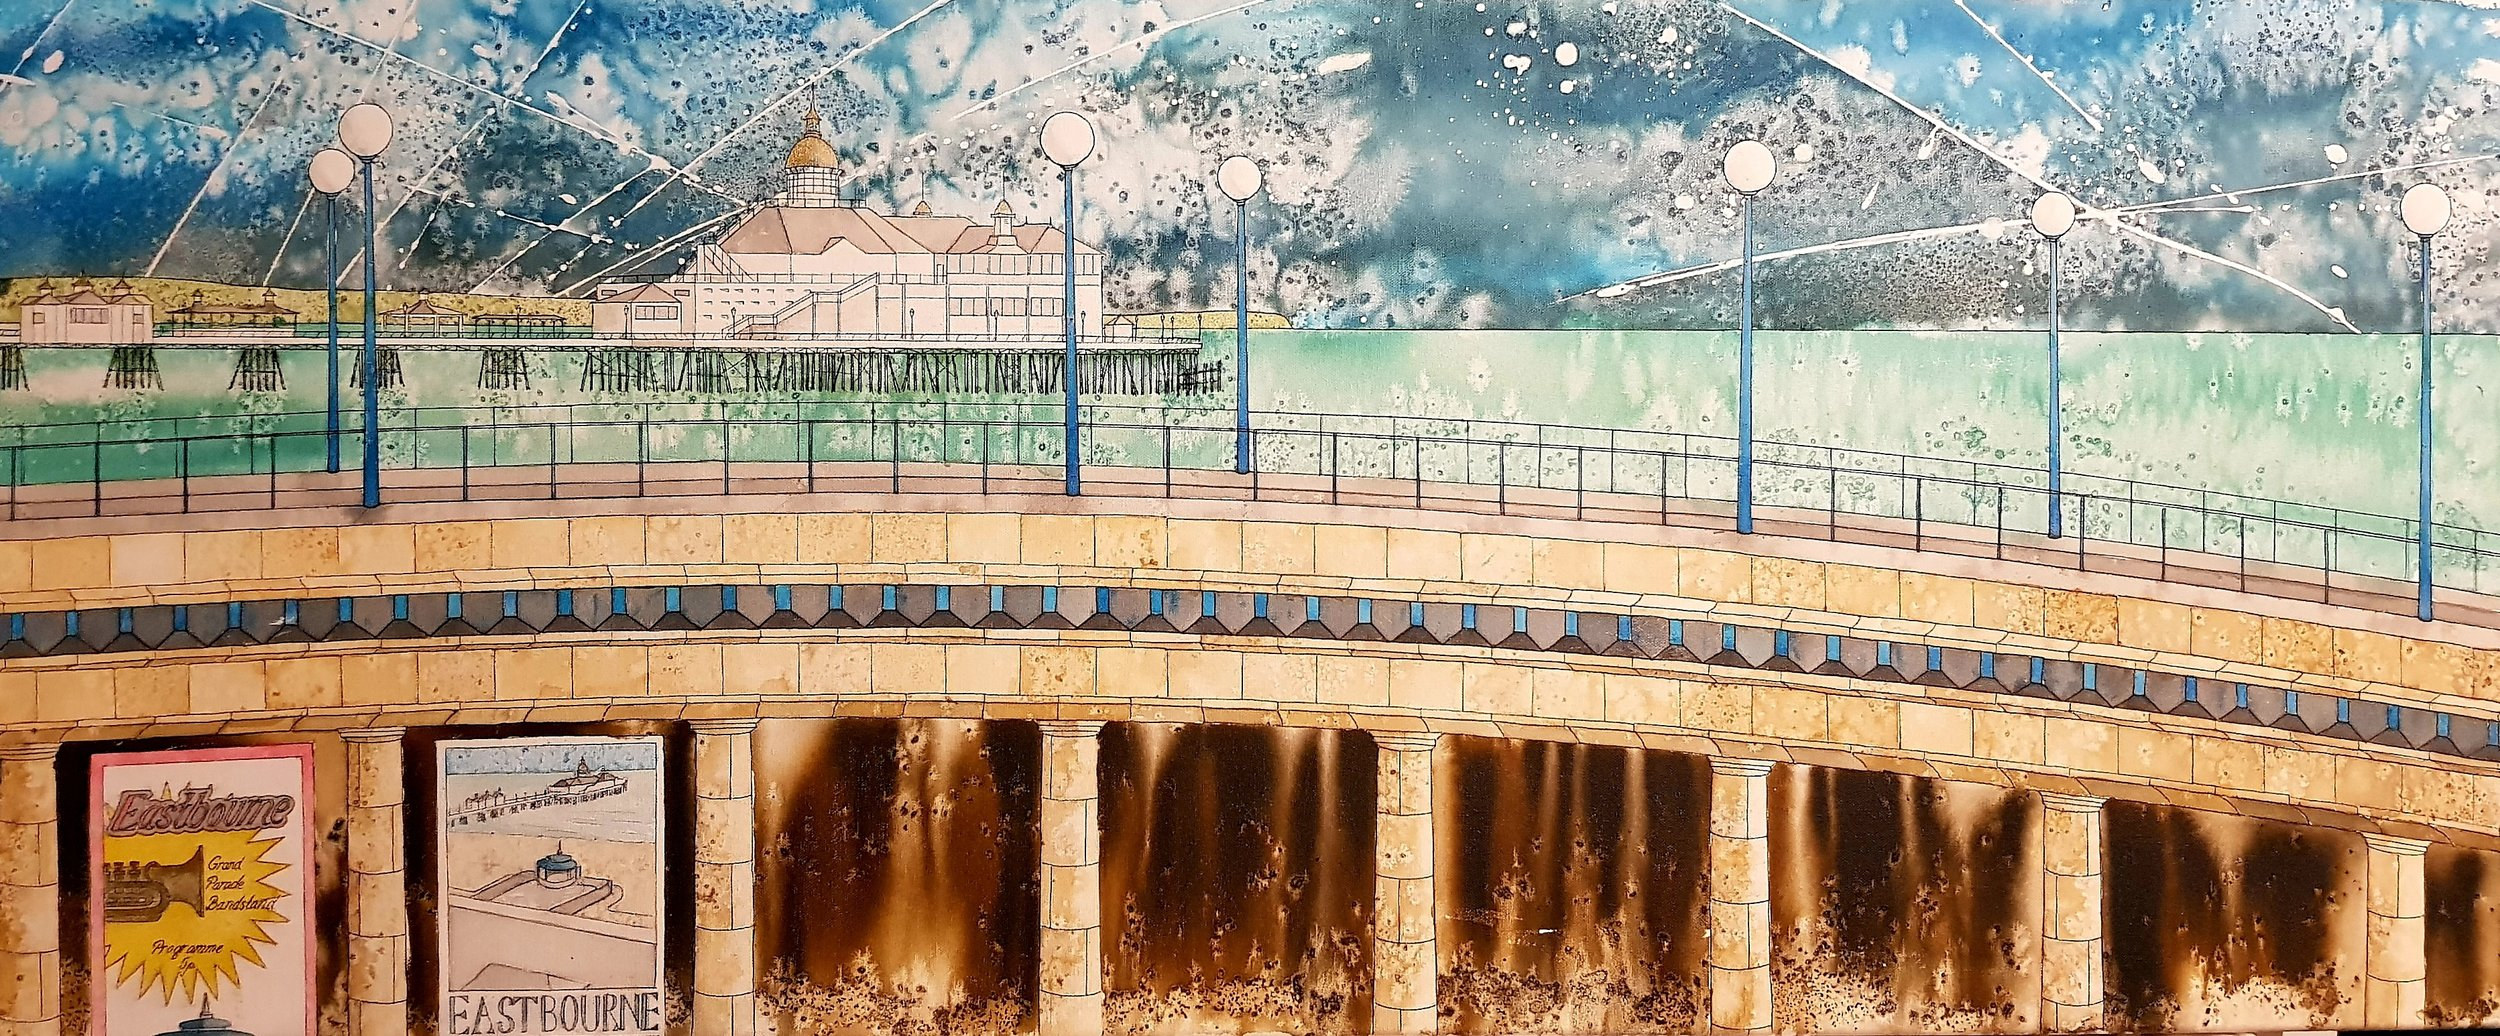 Eastbourne Pier over the Bandstand 120 x 50cm pen and ink